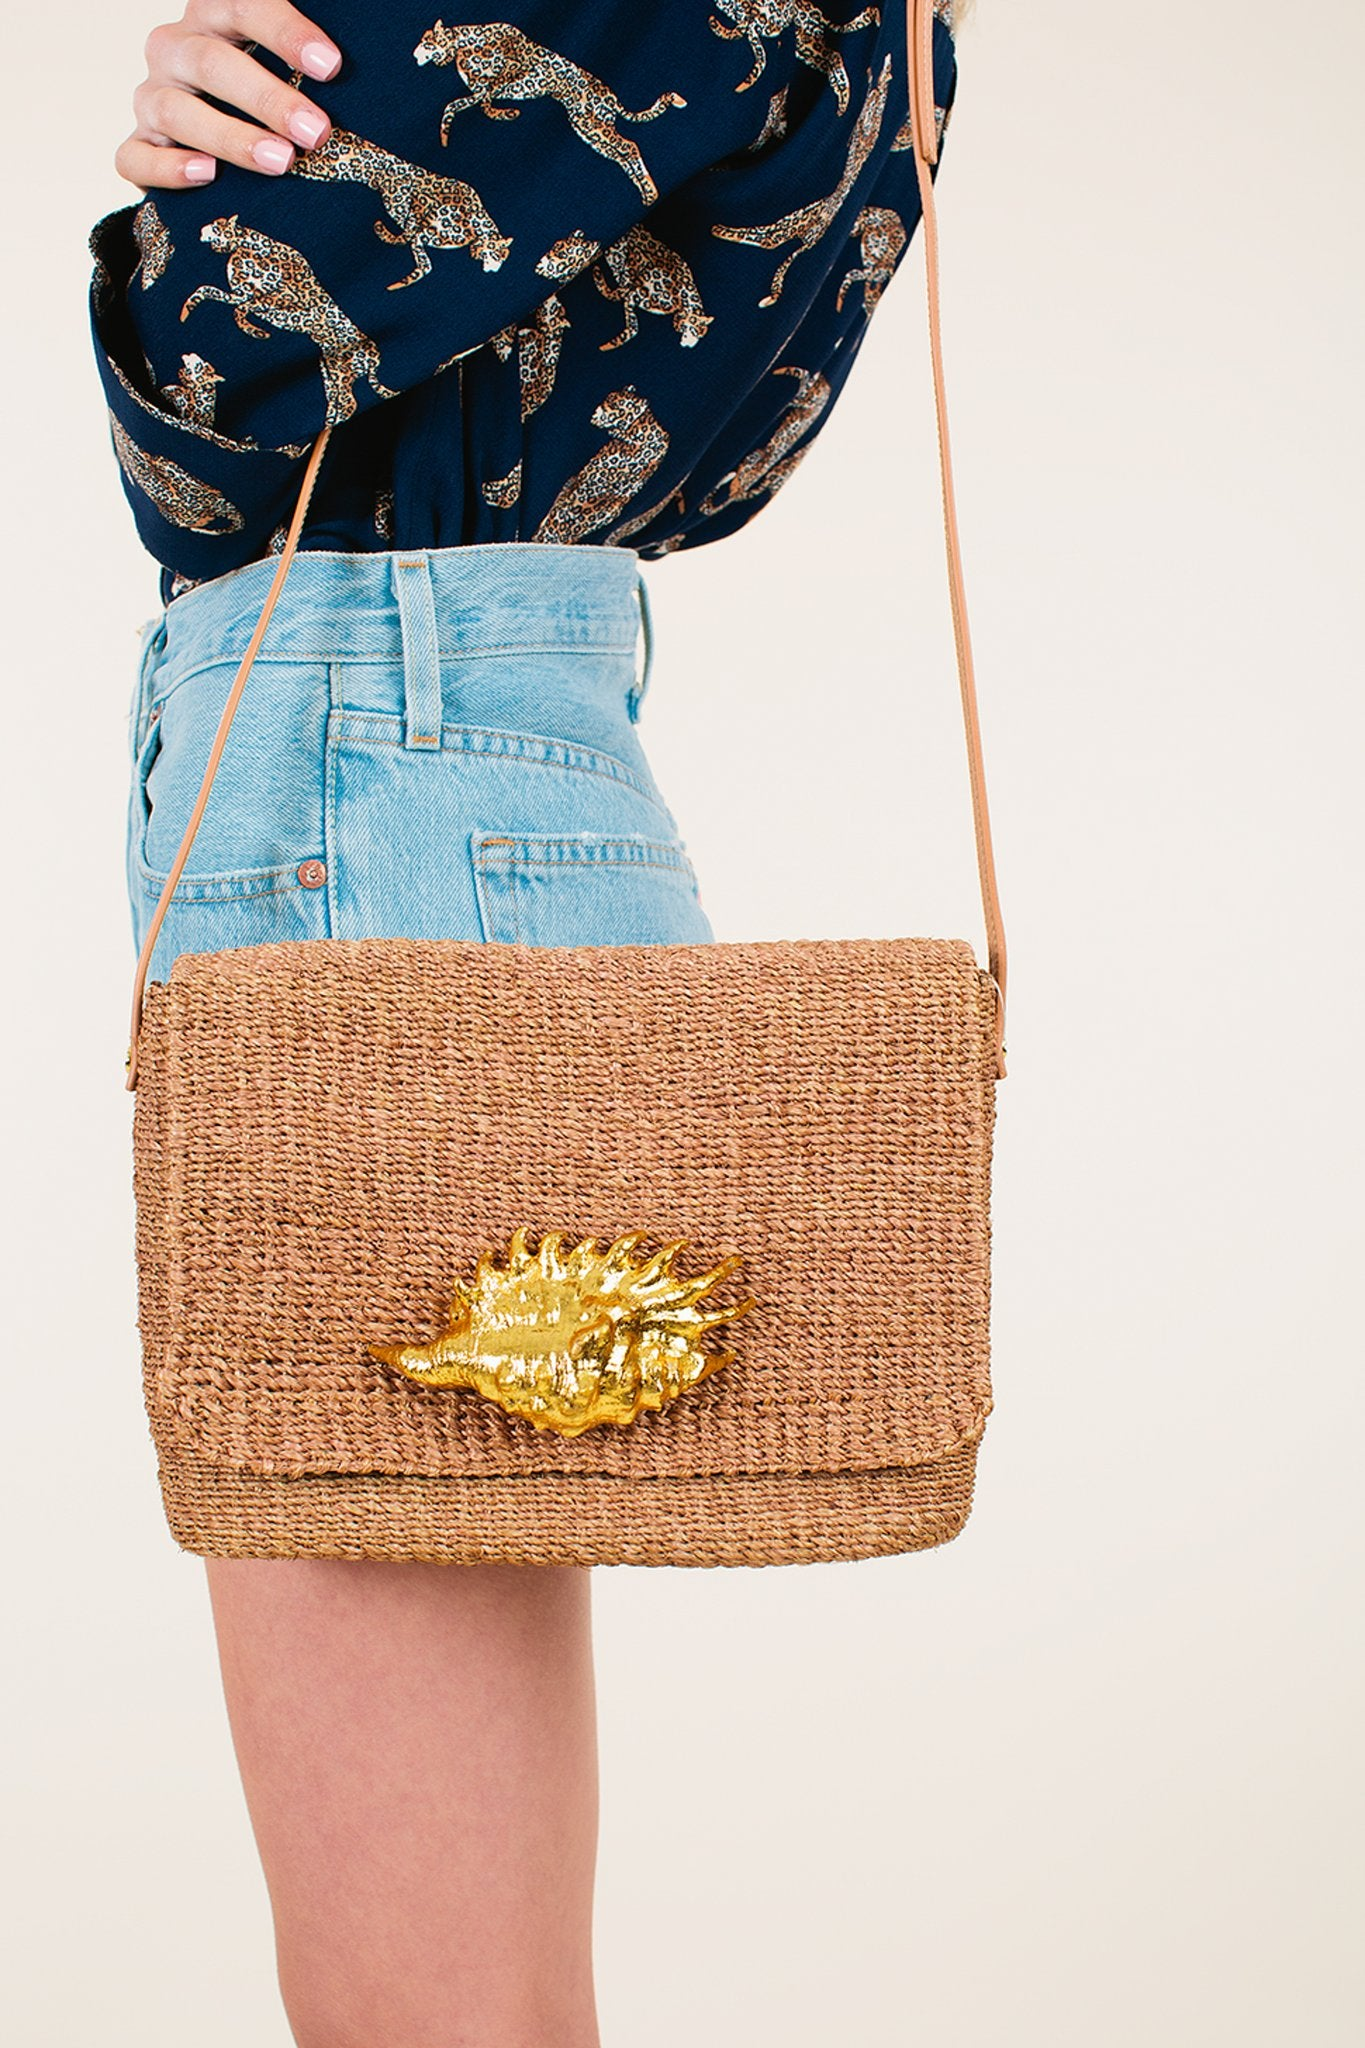 Juse Female Welis Shirt, Aranaz Bag, Levis 501 Shorts